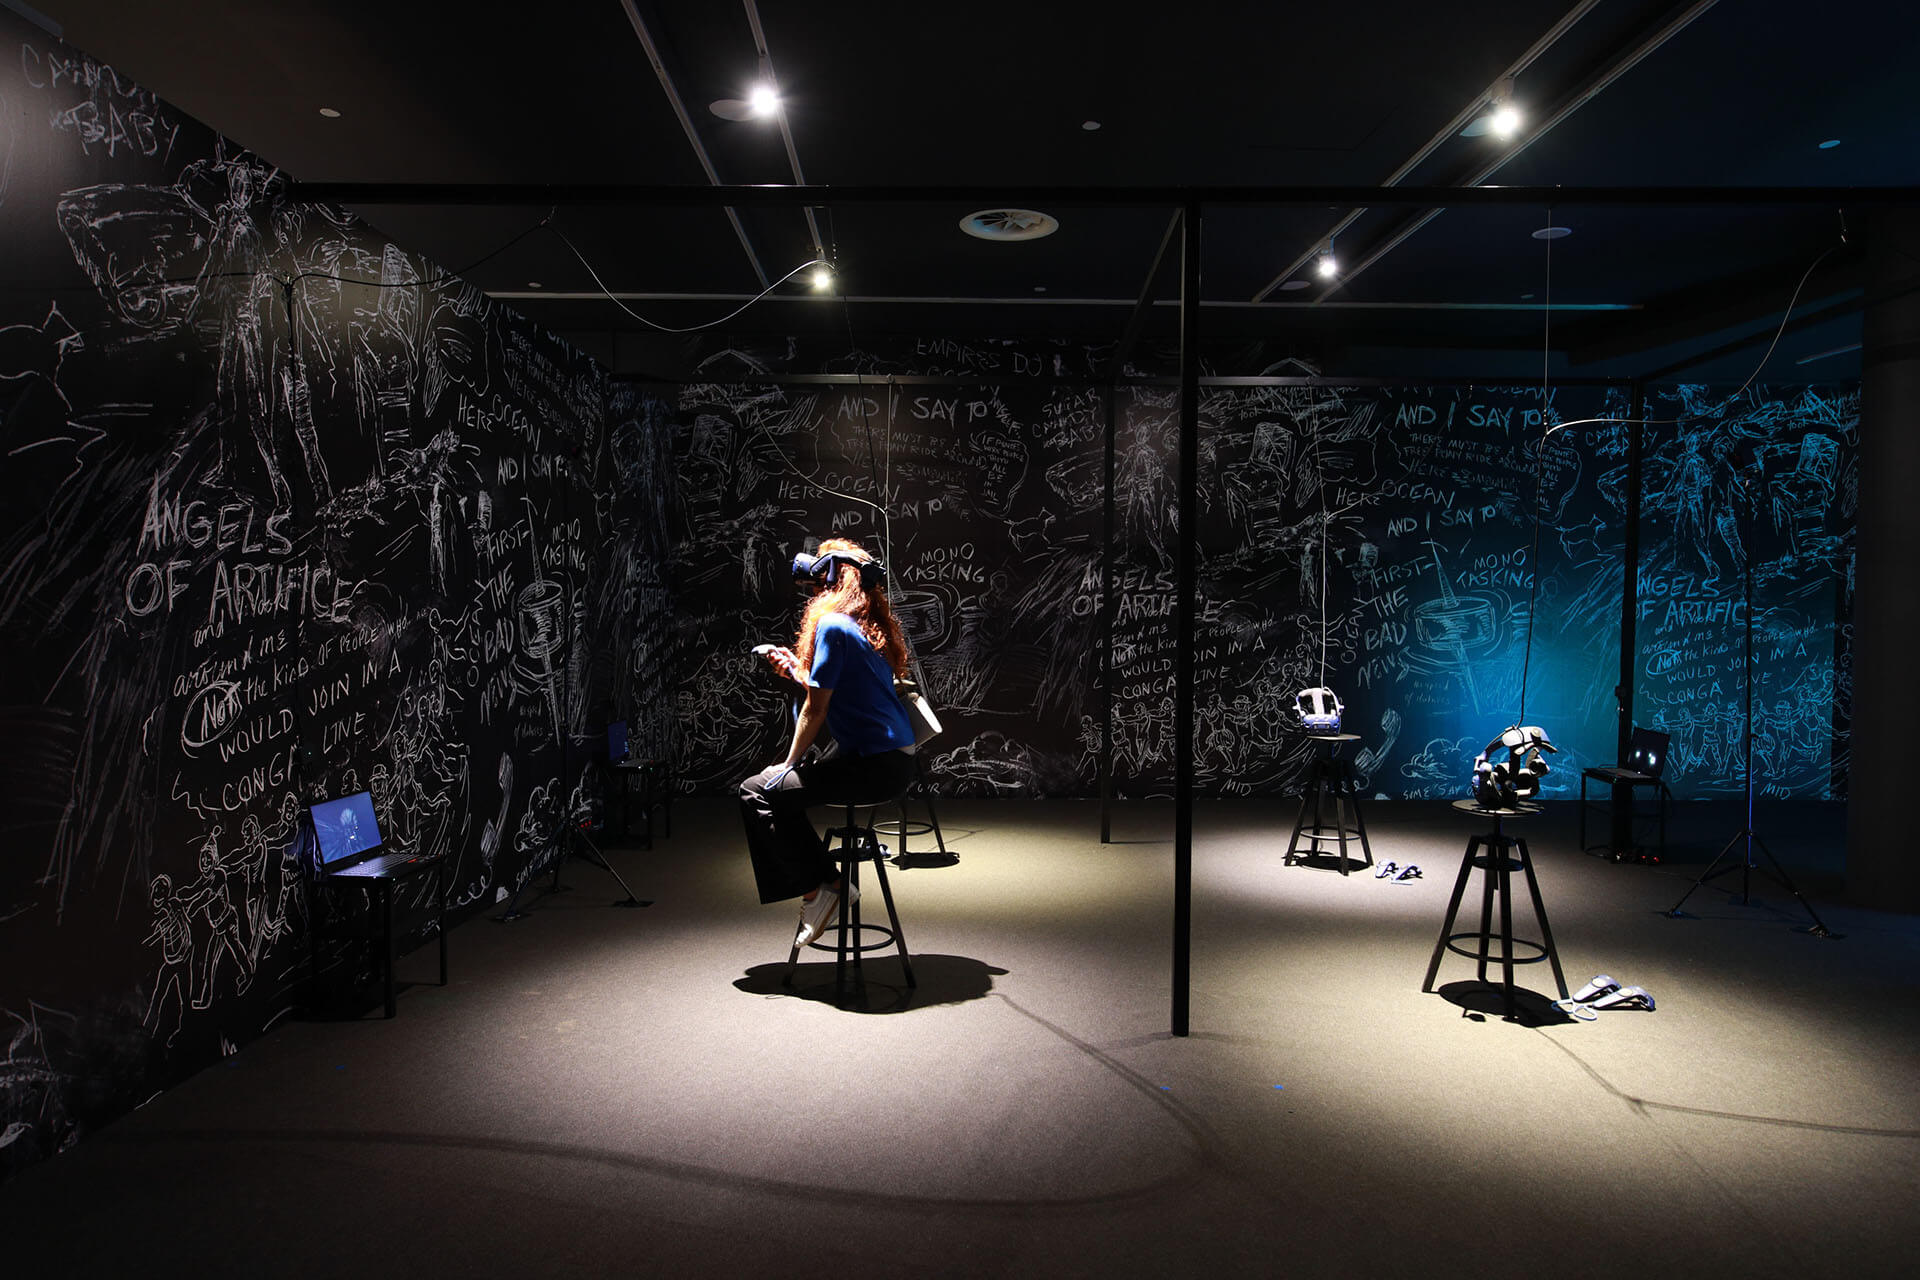 La Camera Insabbiata (The Chalkroom), 2017, by Laurie Anderson and Hsin-Chien Huang | Singapore Biennale | Laurie Anderson, Hsin-Chien Huang | STIRworld